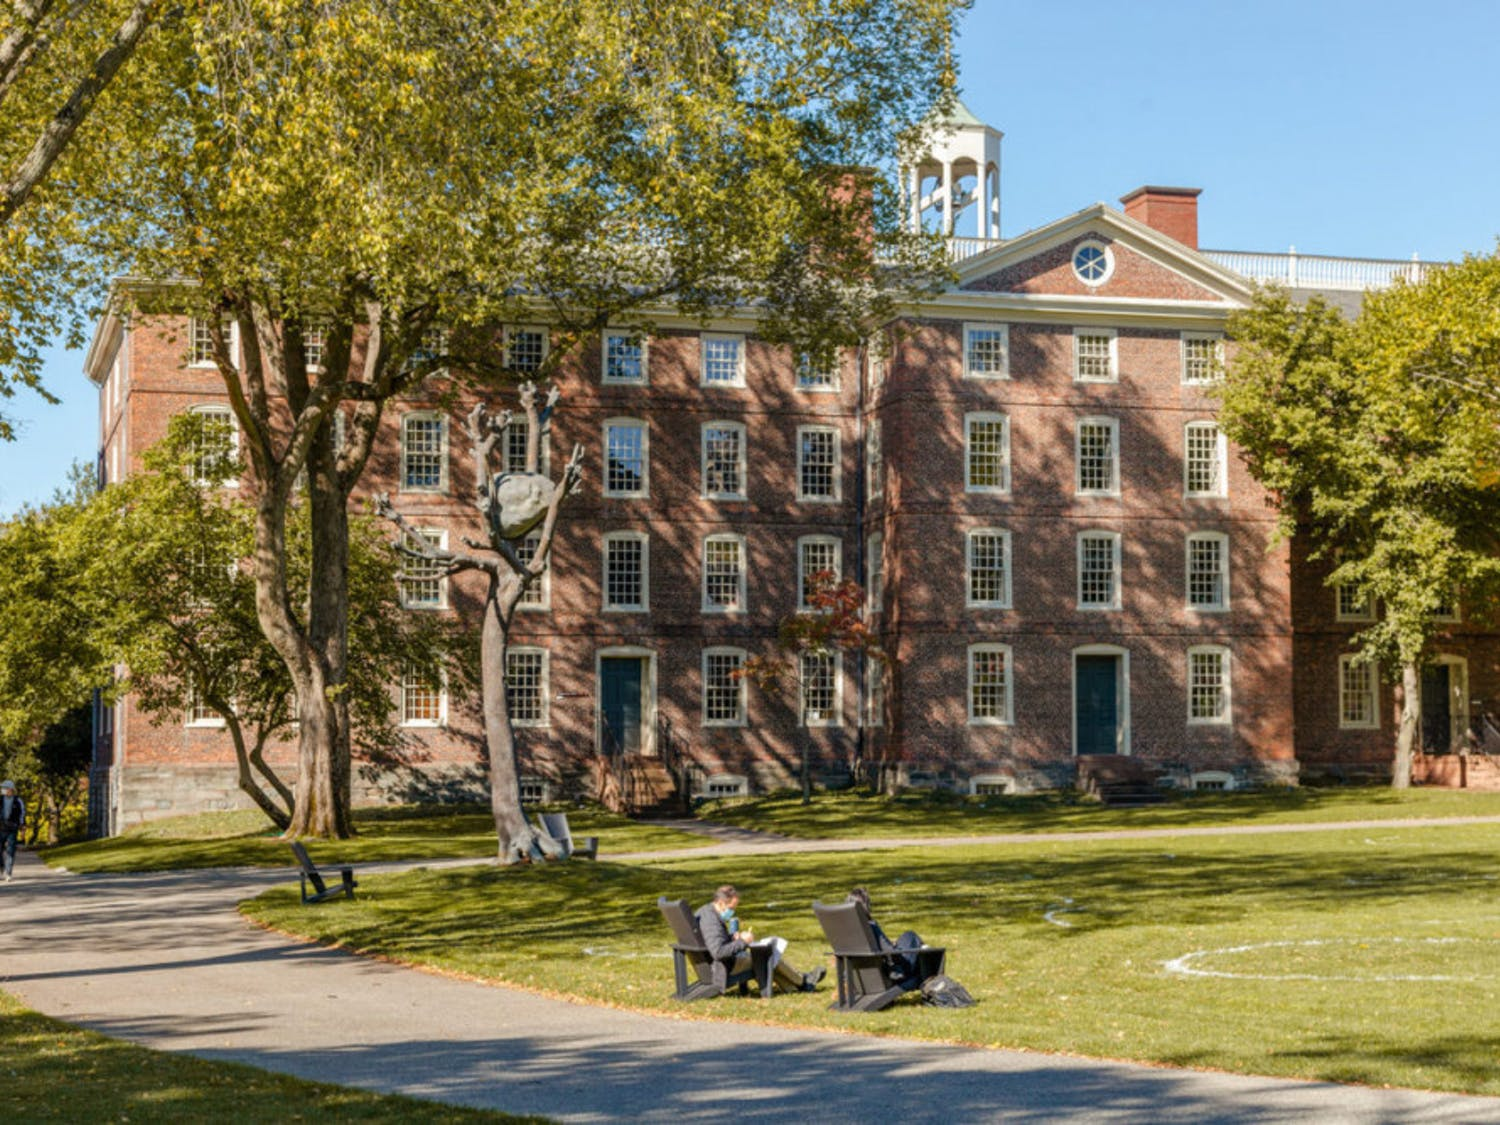 The University reinstated indoors dining last week after a decrease in positive tests.